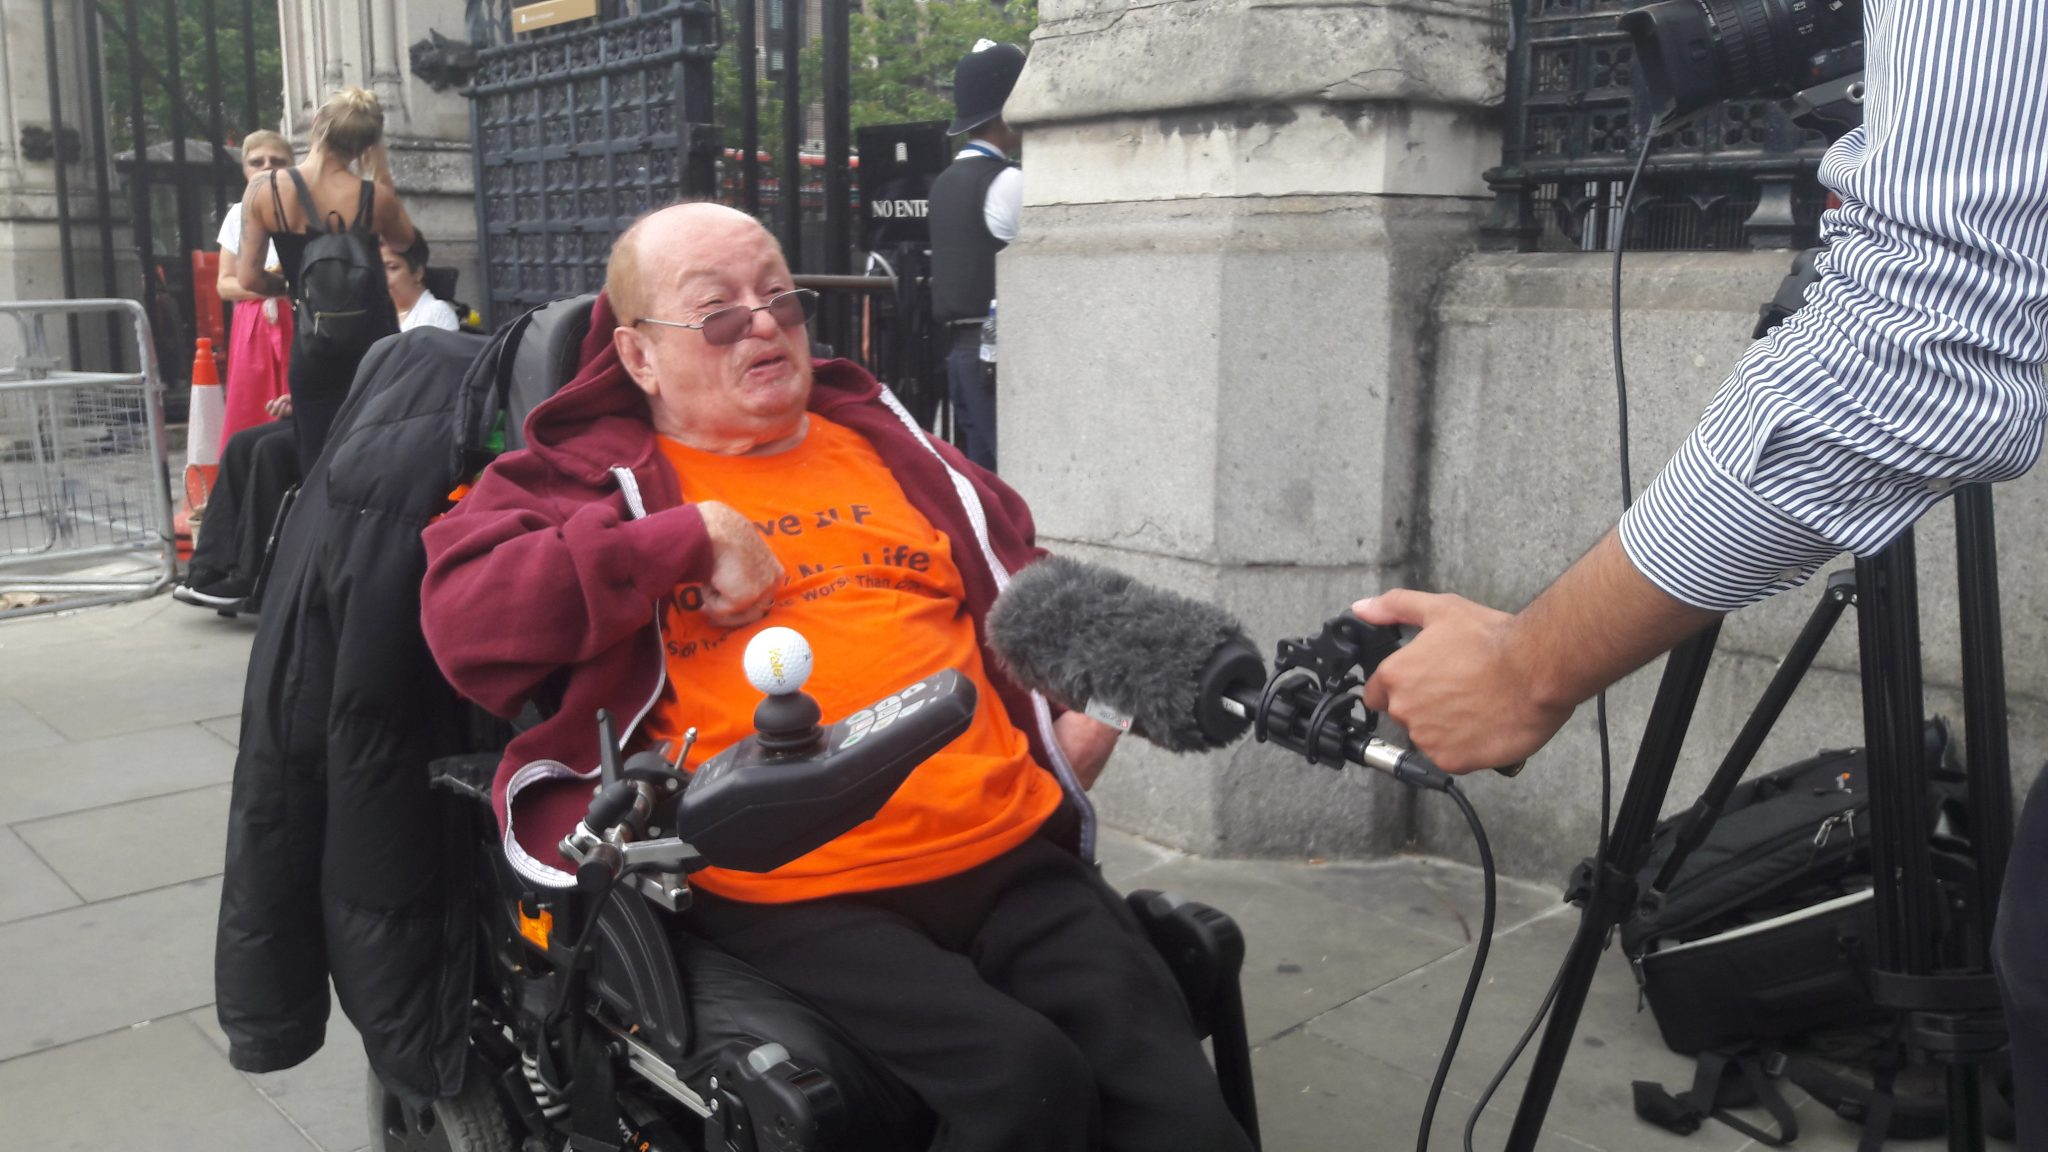 DPAC activist interviewed by a news reporter with microphone outside Parliament